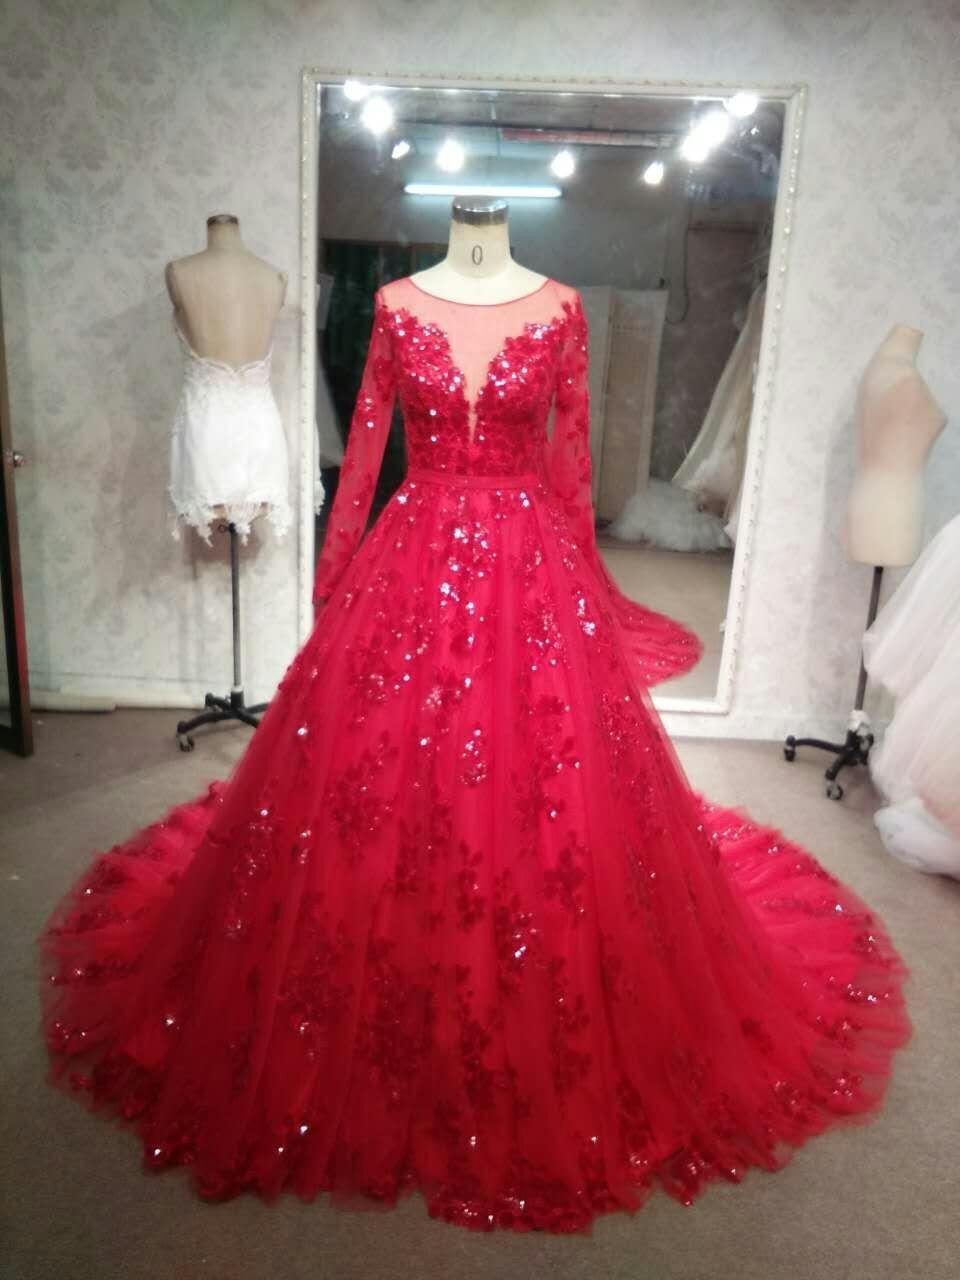 Long sleeve red wedding gowns darius cordell dariuscordell longsleeveredweddinggowns back of red lace bridal gown junglespirit Images